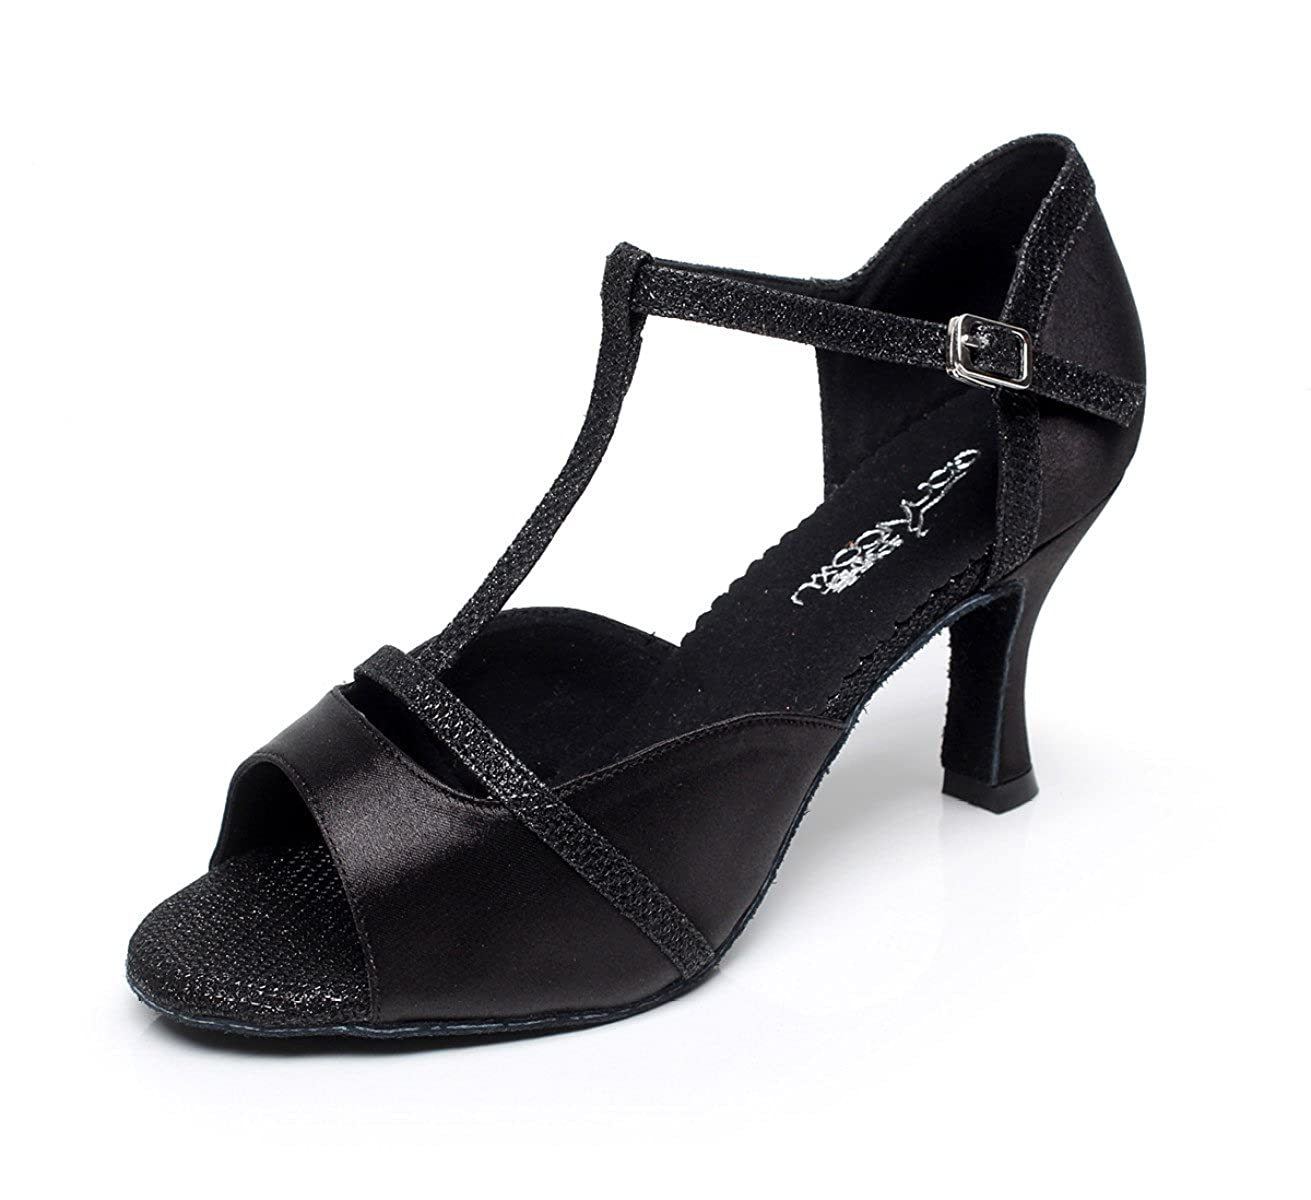 JSHOE Femmes Sexy T-Strap Latin Salsa Ballroom T-Strap Jazz Chaussures - de Danse Ballroom Latino Tango Party Danse Chaussures Talons Hauts,Black-heeled7.5cm-UK5/EU37/Our38 - b58a68f - shopssong.space